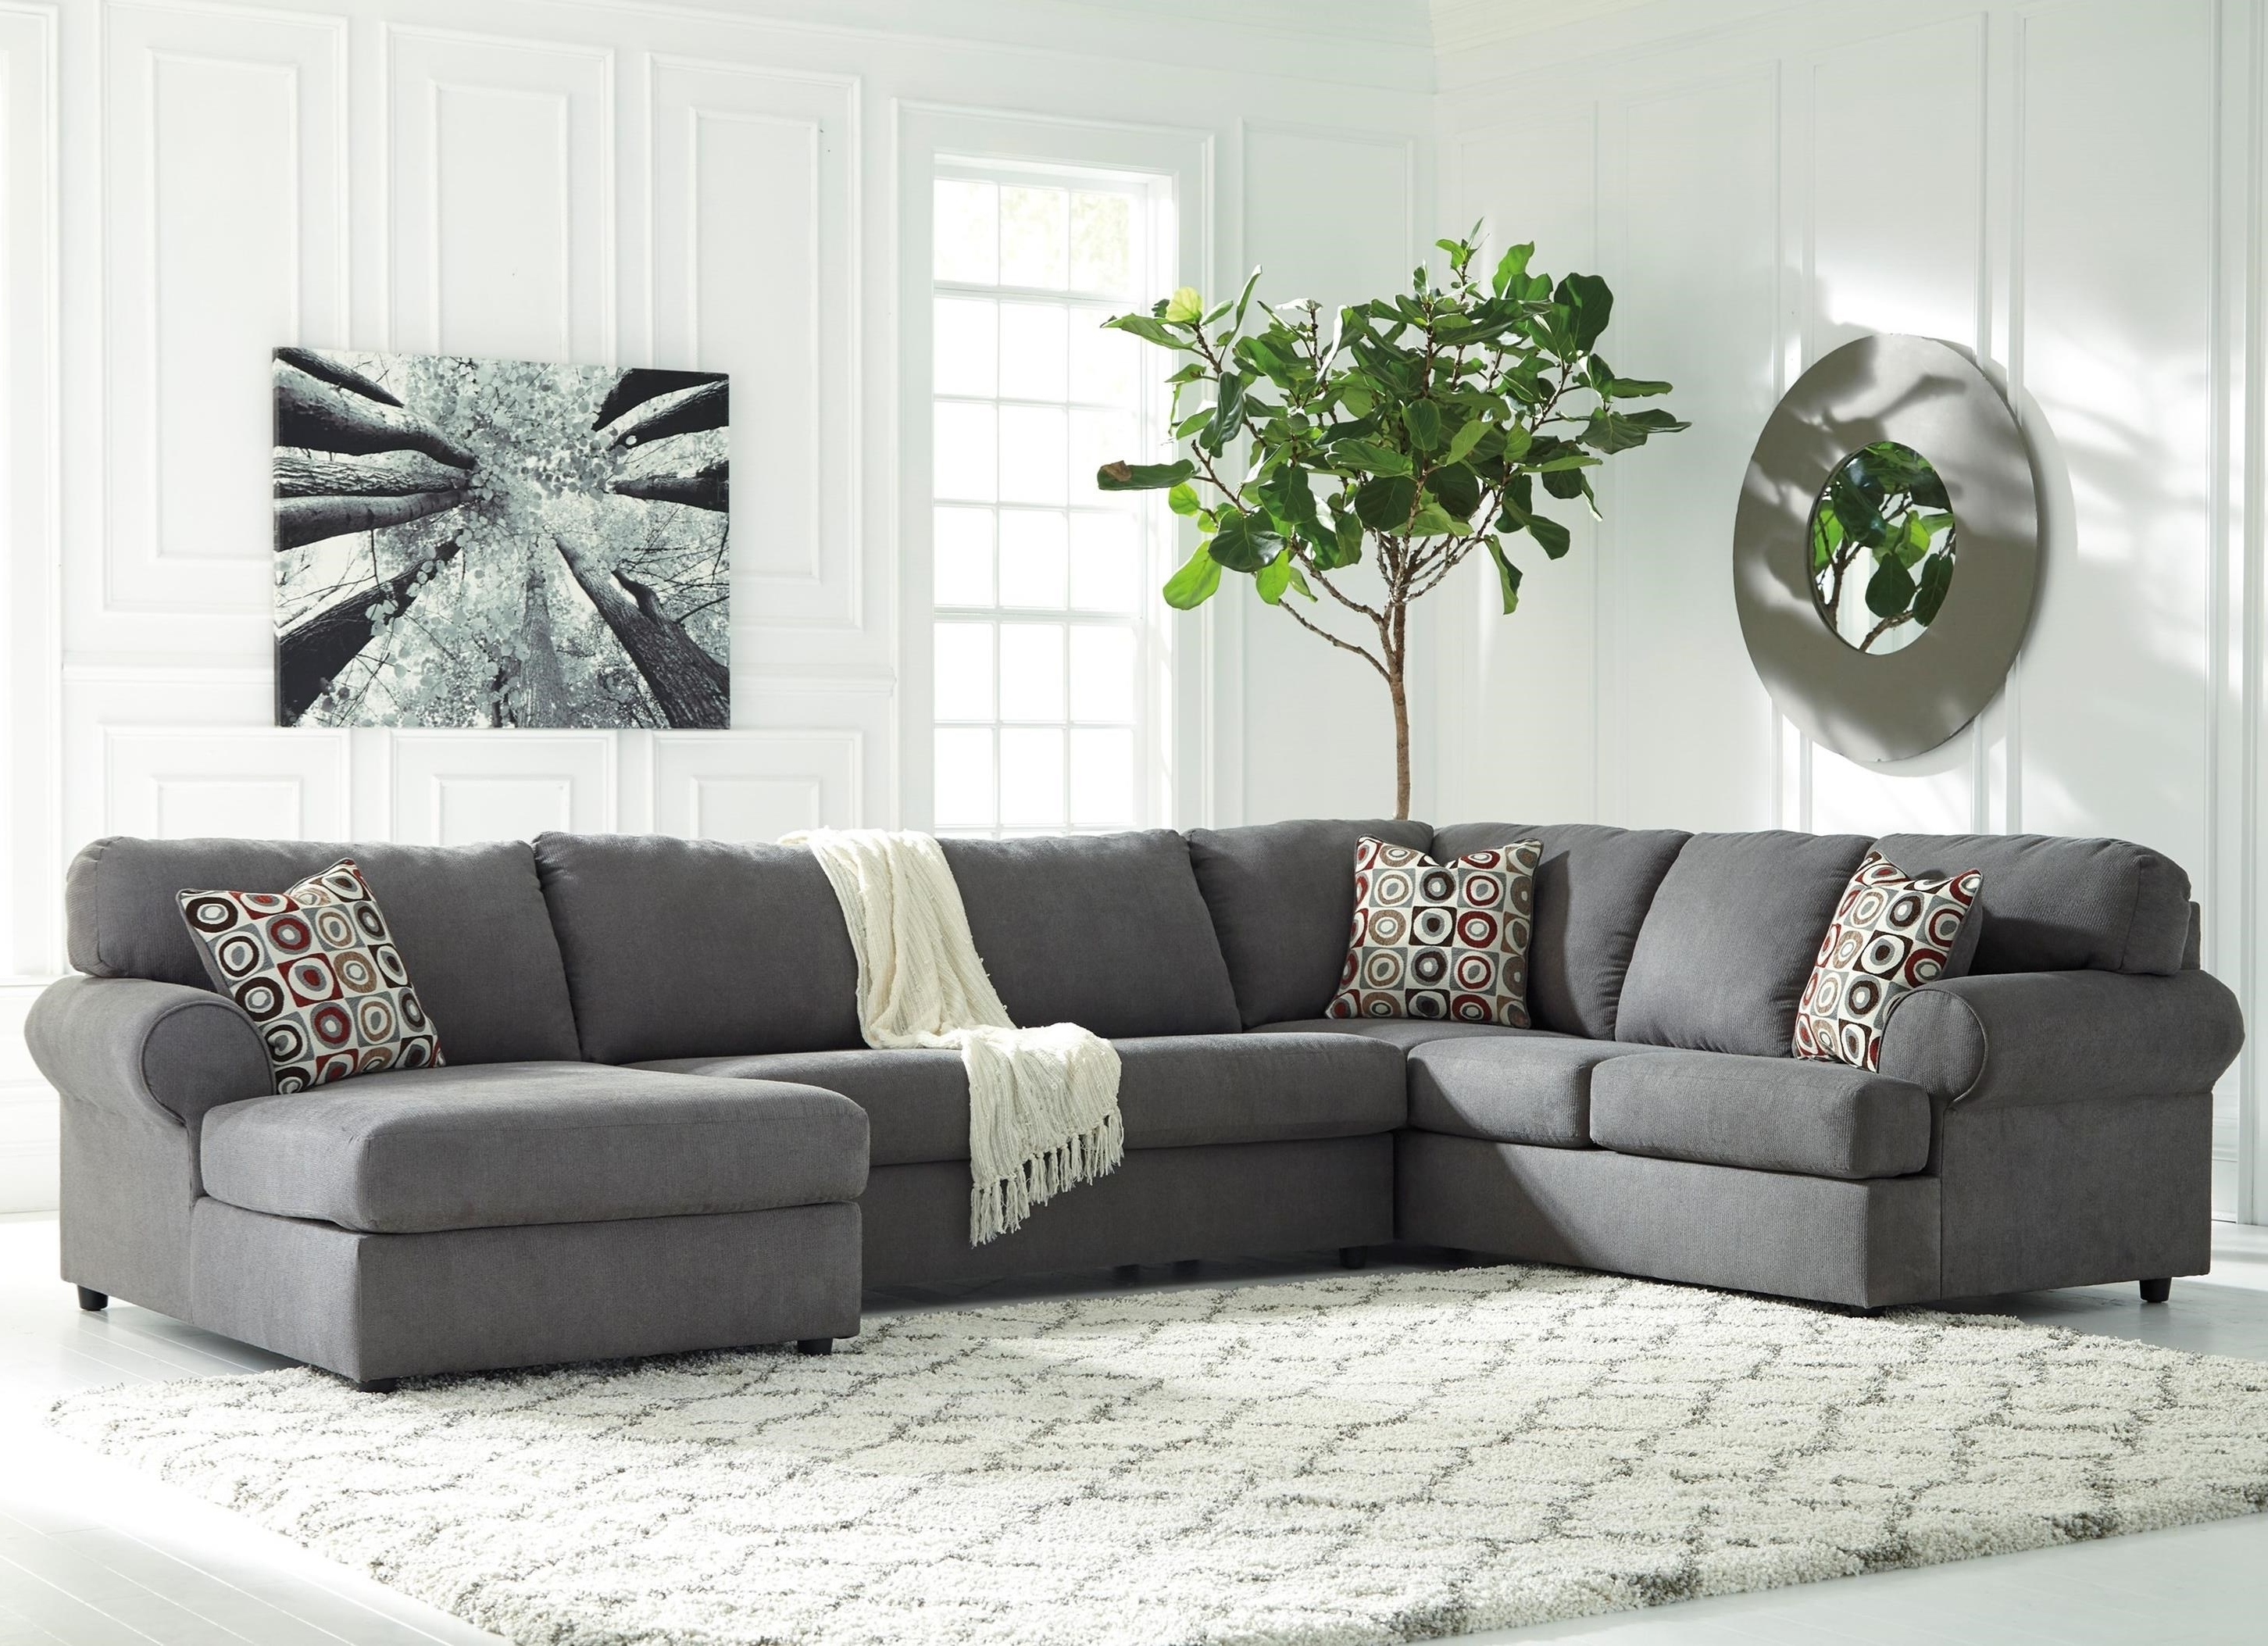 Best And Newest Signature Designashley Jayceon 3 Piece Sectional With Right In 3 Piece Sectionals With Chaise (View 4 of 15)